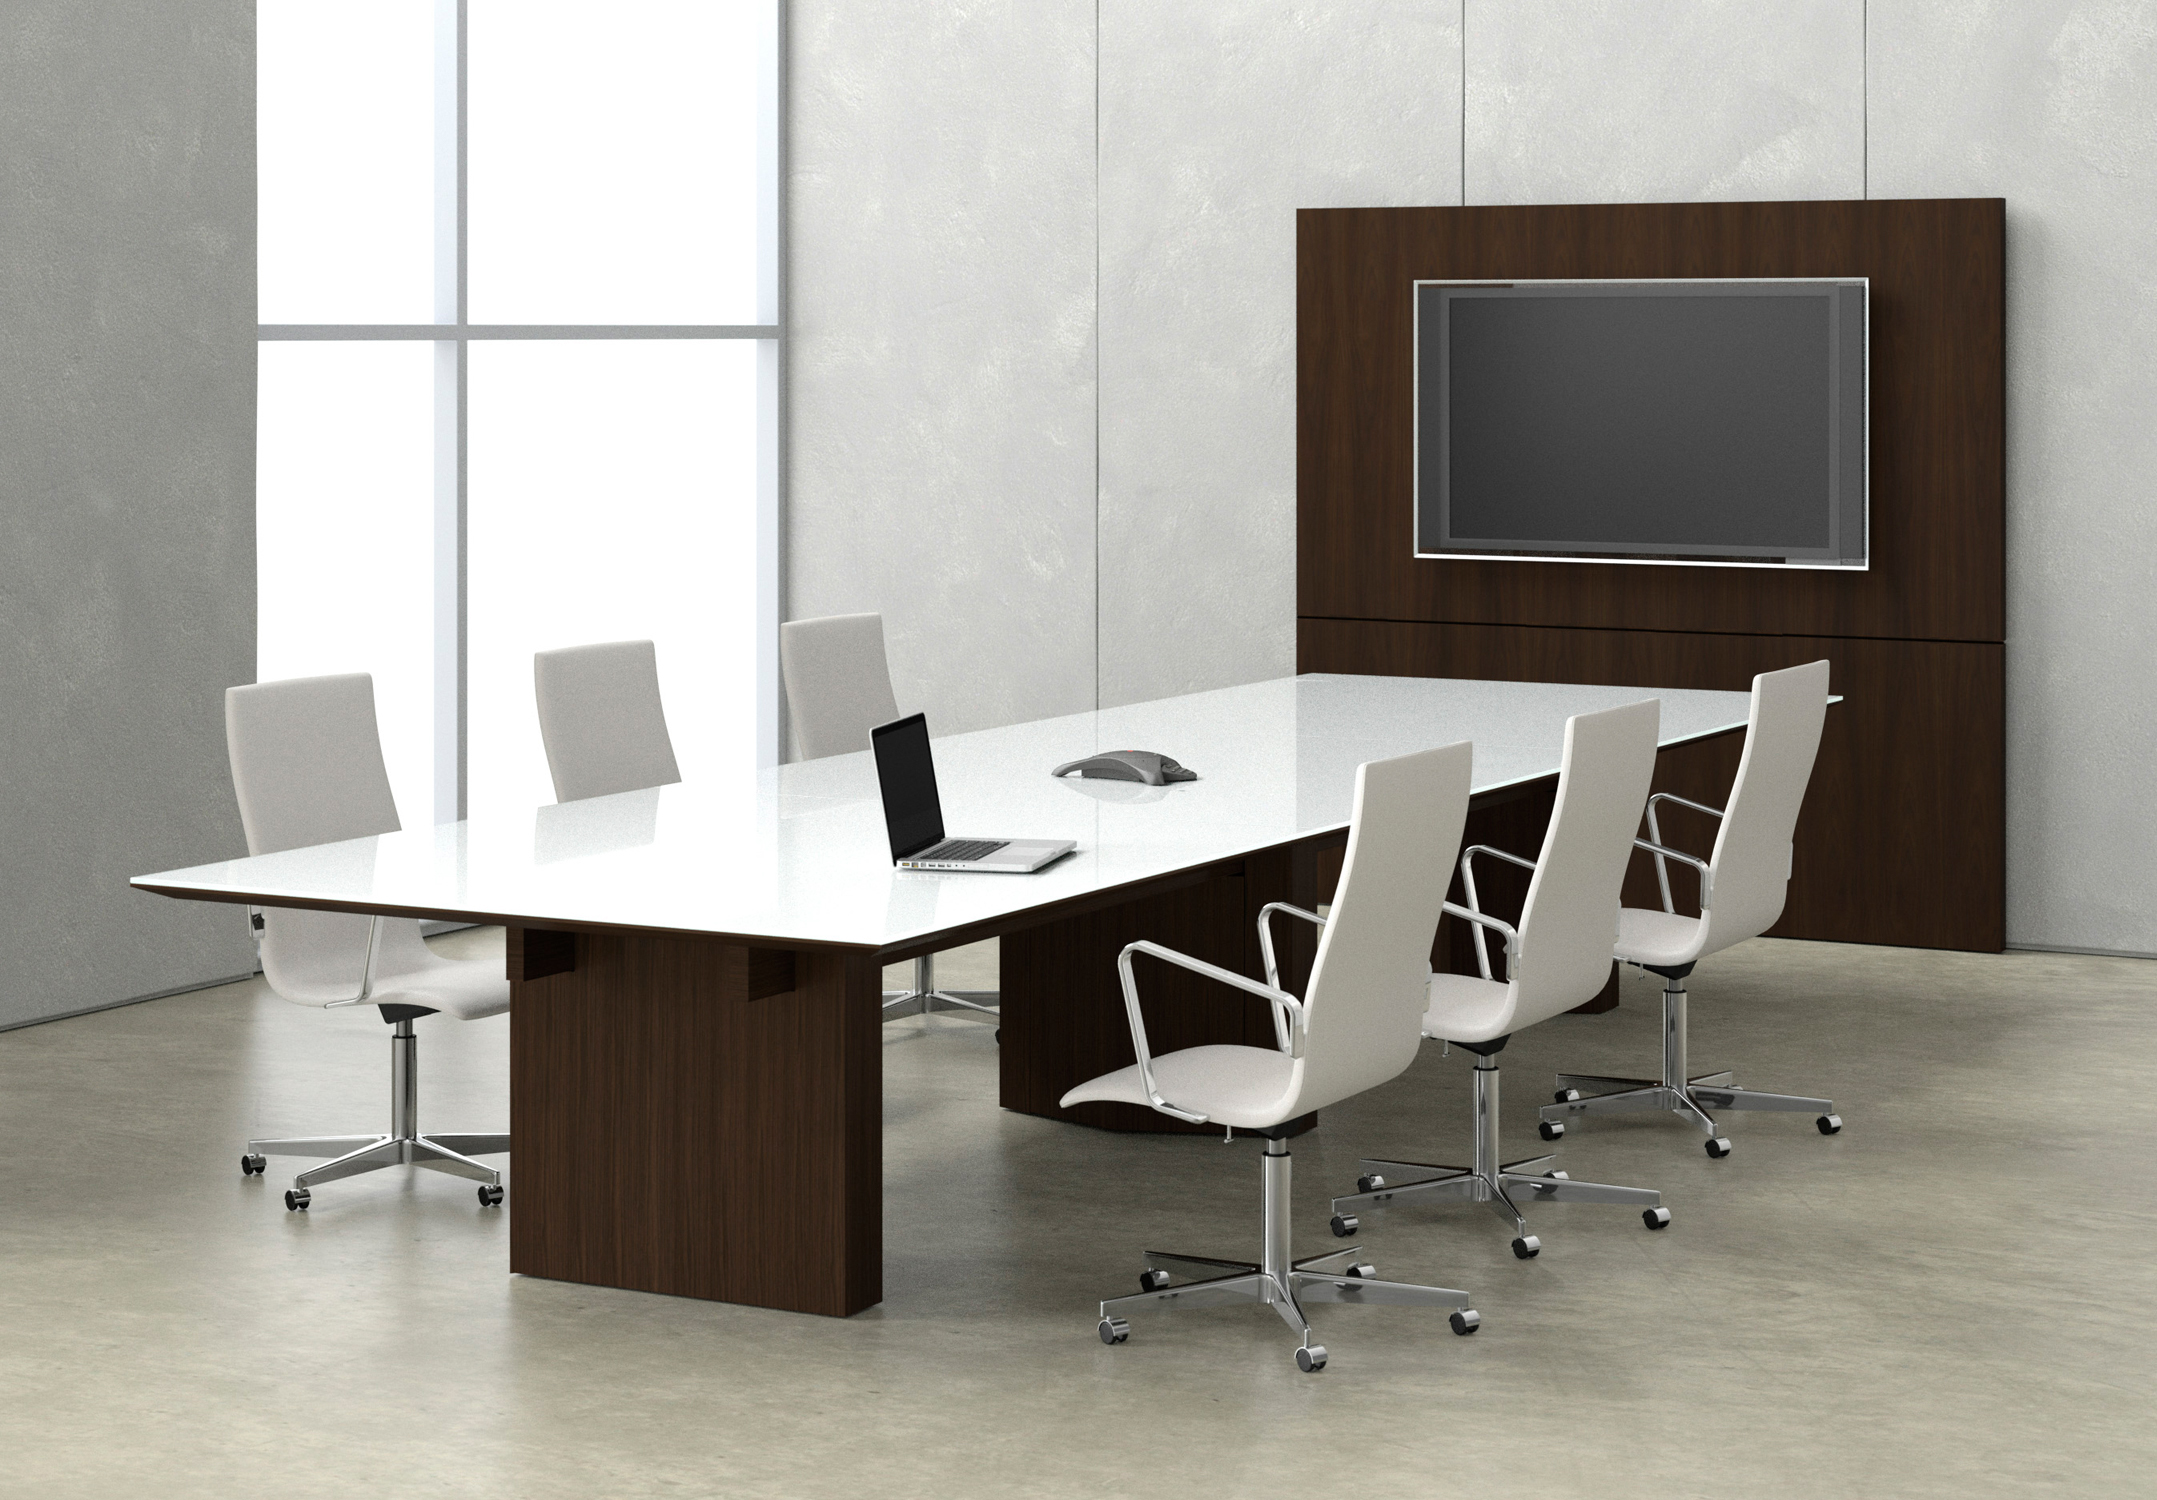 Impress Board Members With These Five Modern Conference Room